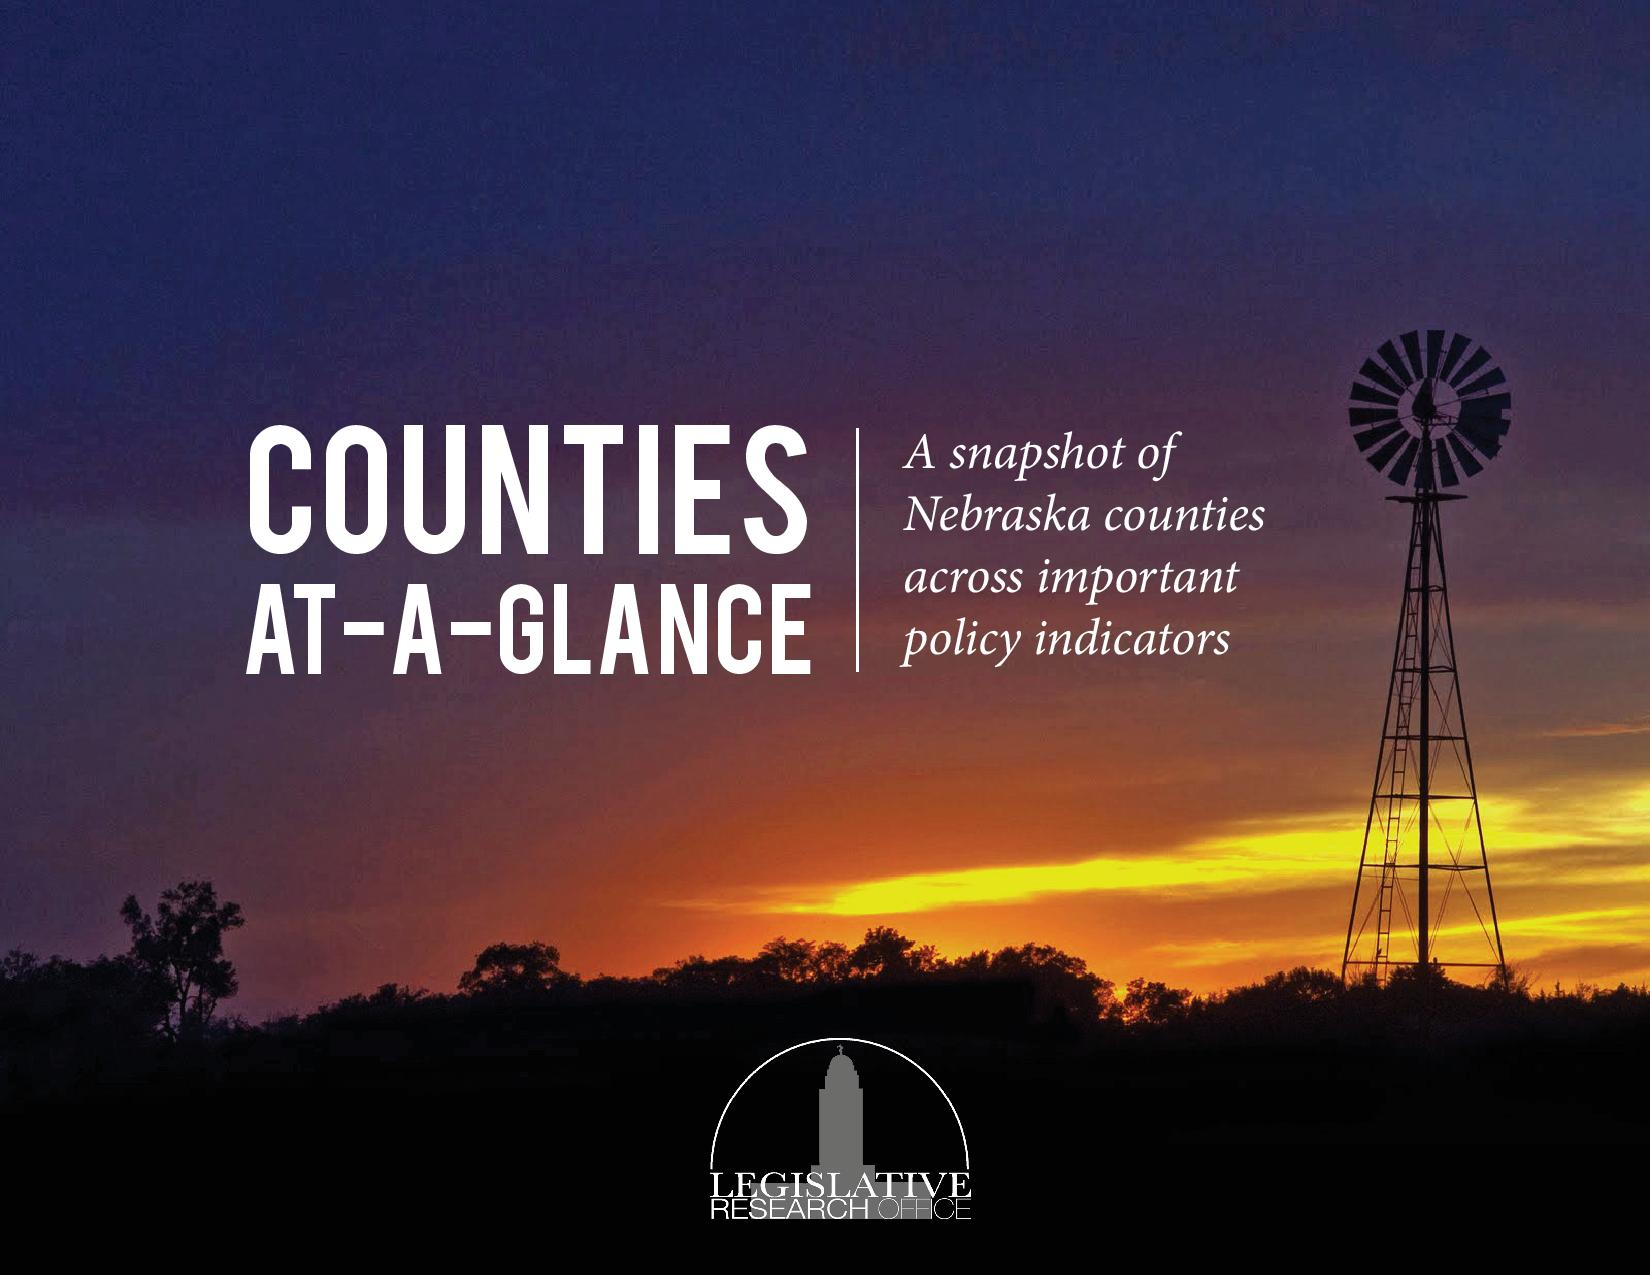 counties_at_a_glance_2015-page-001